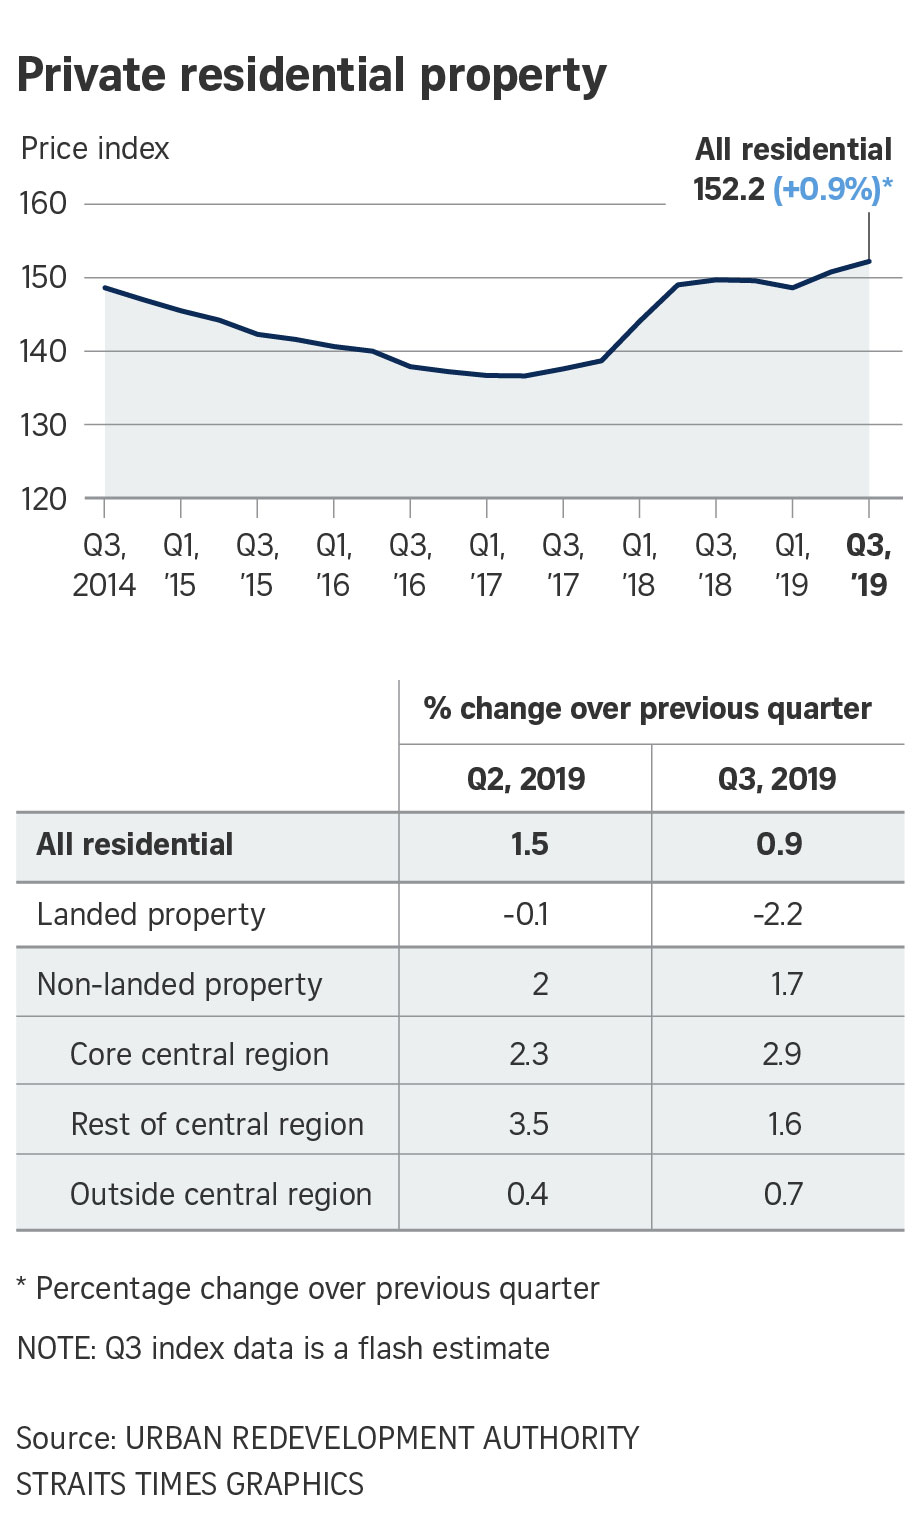 2019-Q3-URA-private-residential-property